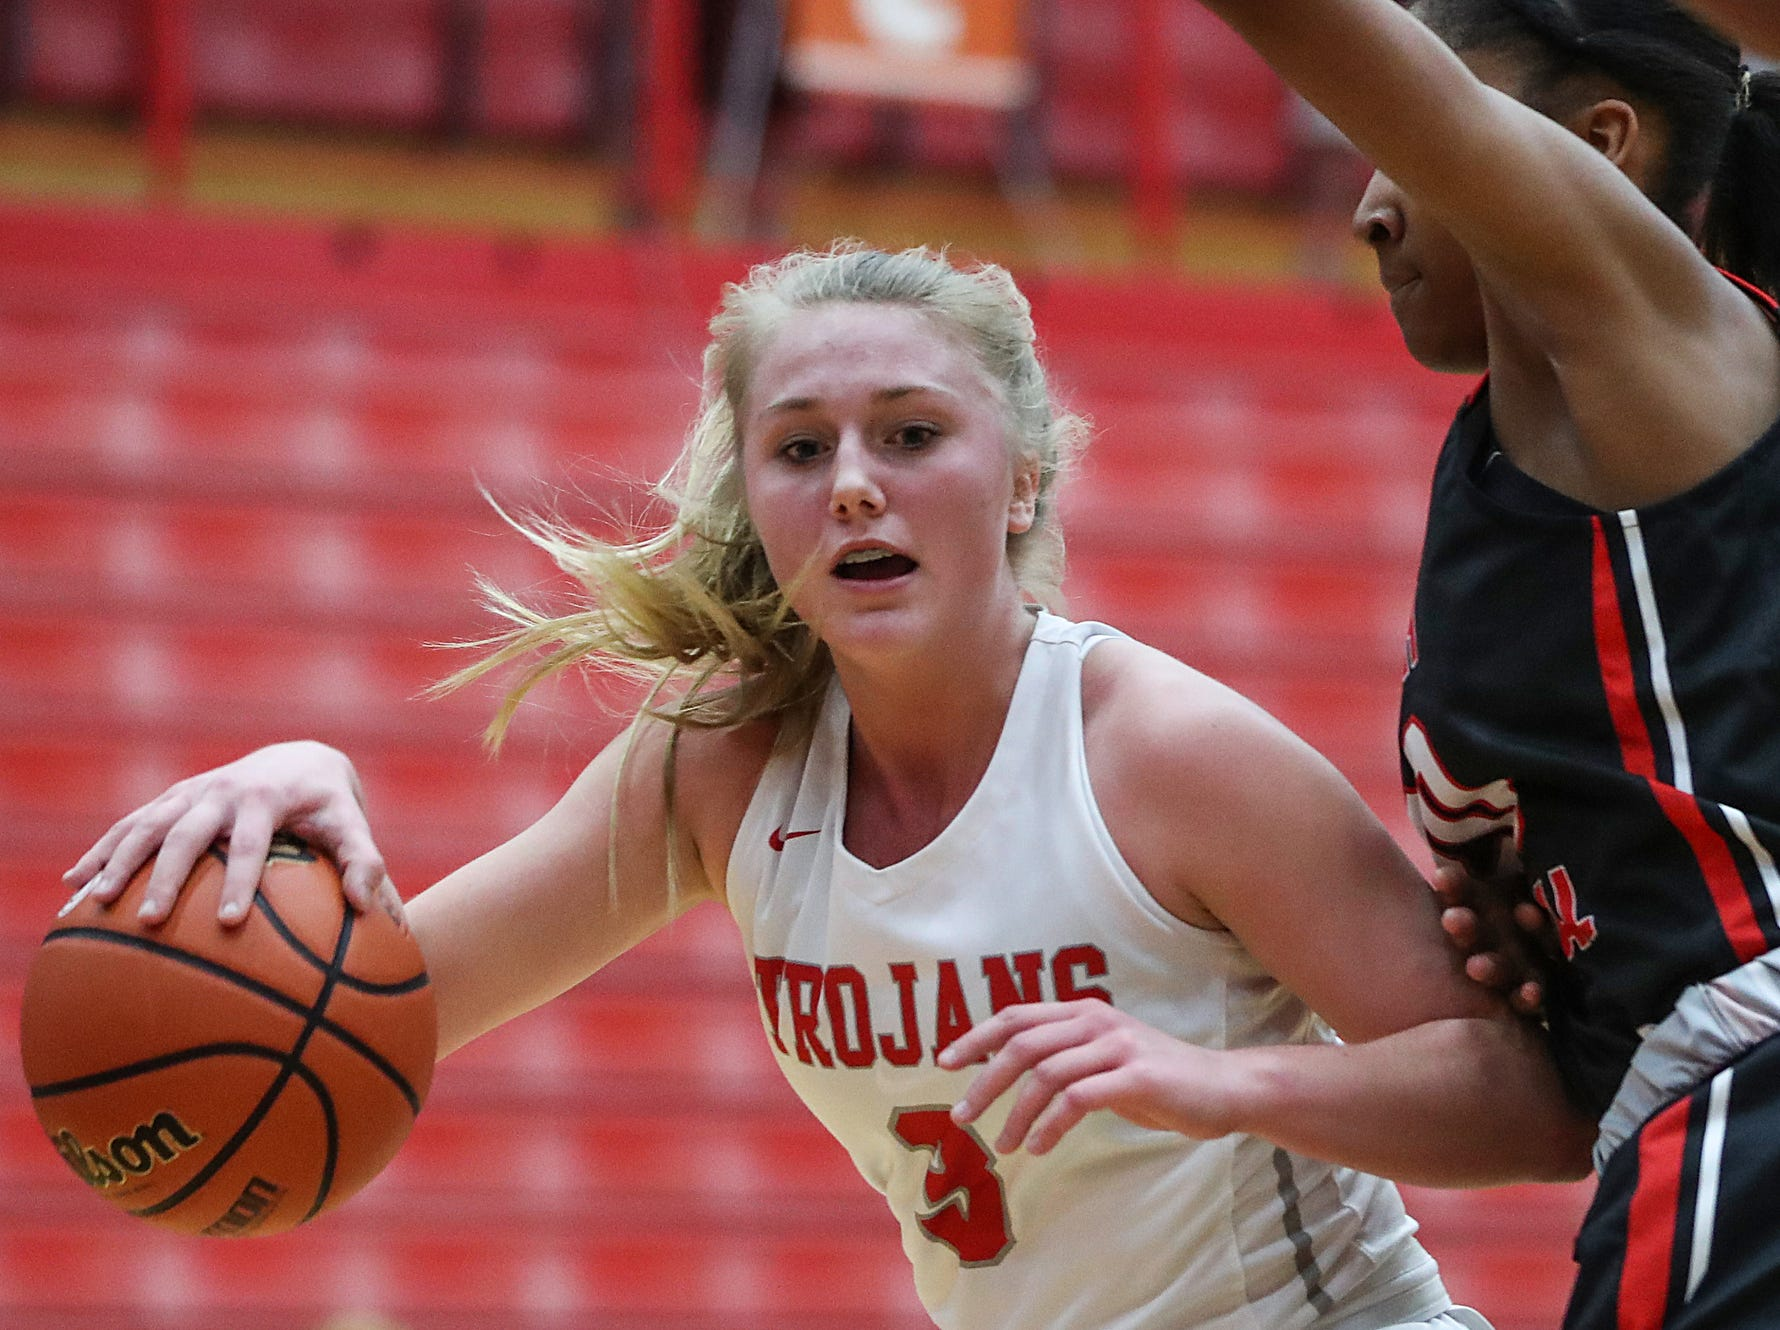 Center Grove Trojans guard Ashley Eck (3) dribbles around North Central Panthers forward Ramiah Elliott (20) in the first half of the game at Center Grove High School in Greenwood, Ind., Thursday, Jan. 10, 2019. Center Grove defeated North Central, 51-44.